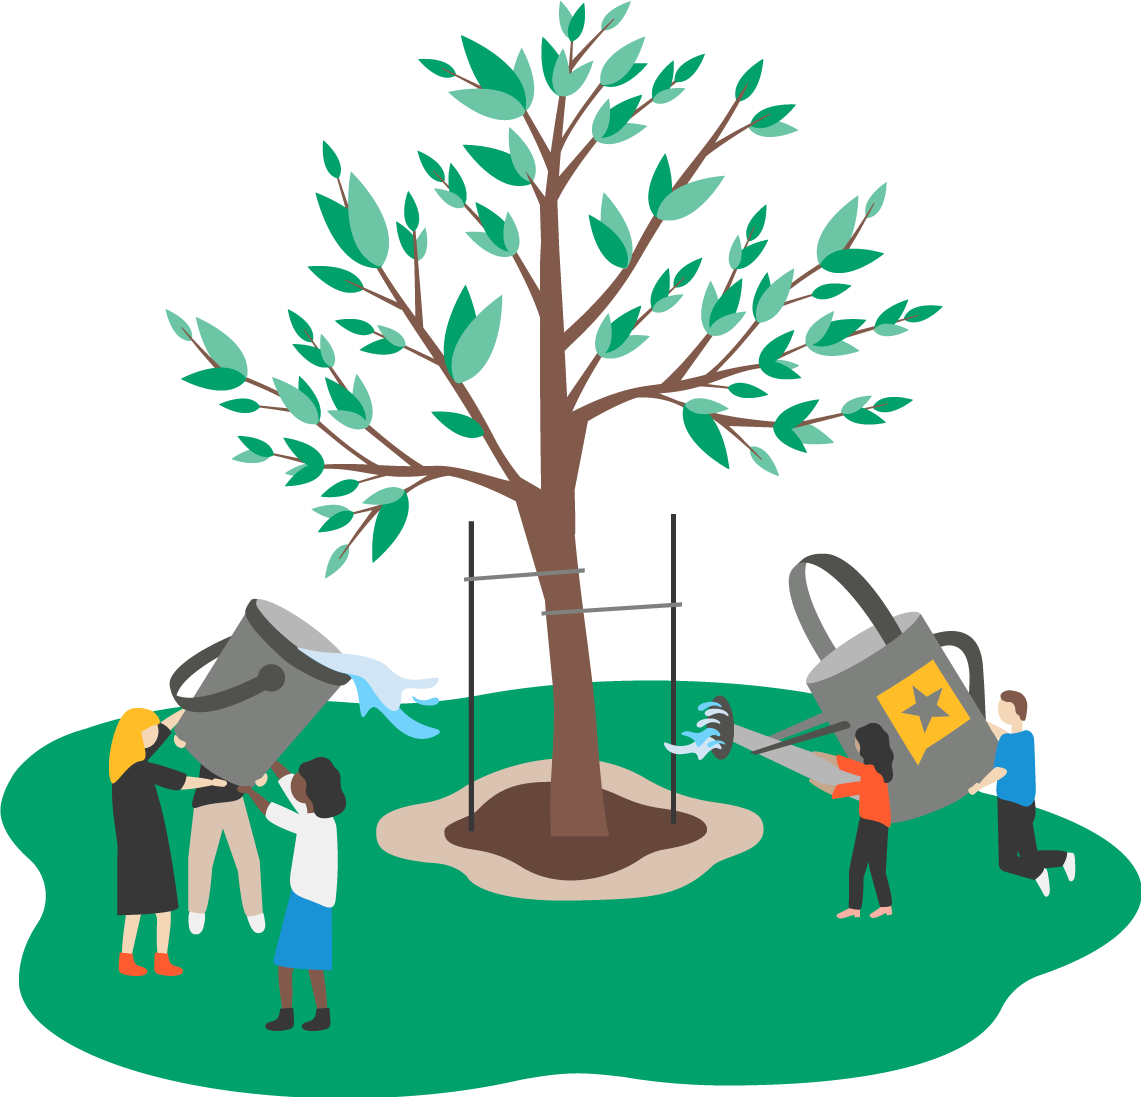 Illustration: People working together to water a tree.